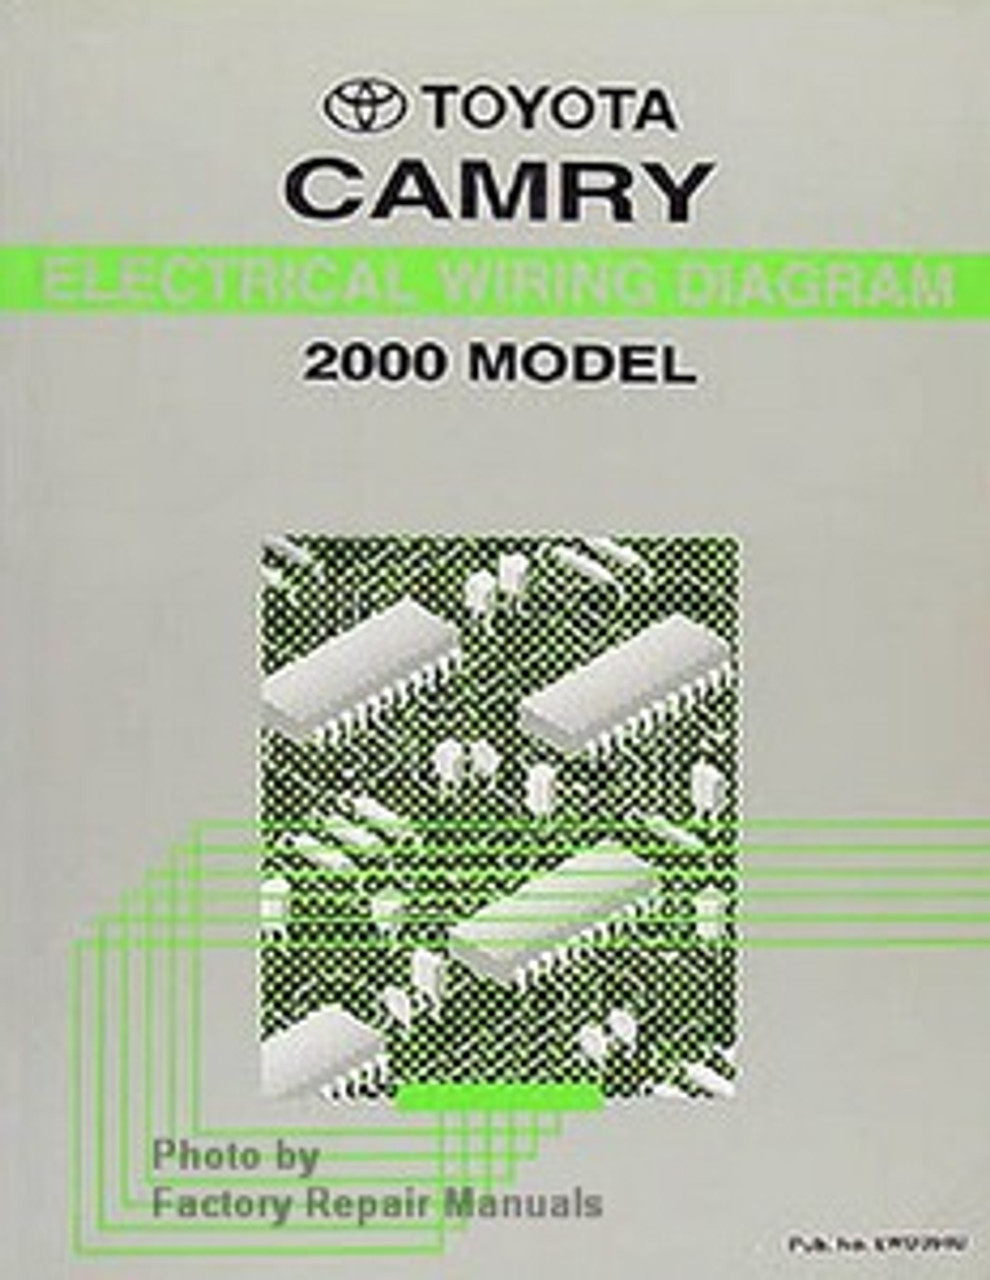 2000 Toyota Camry Electrical Wiring Diagrams Original